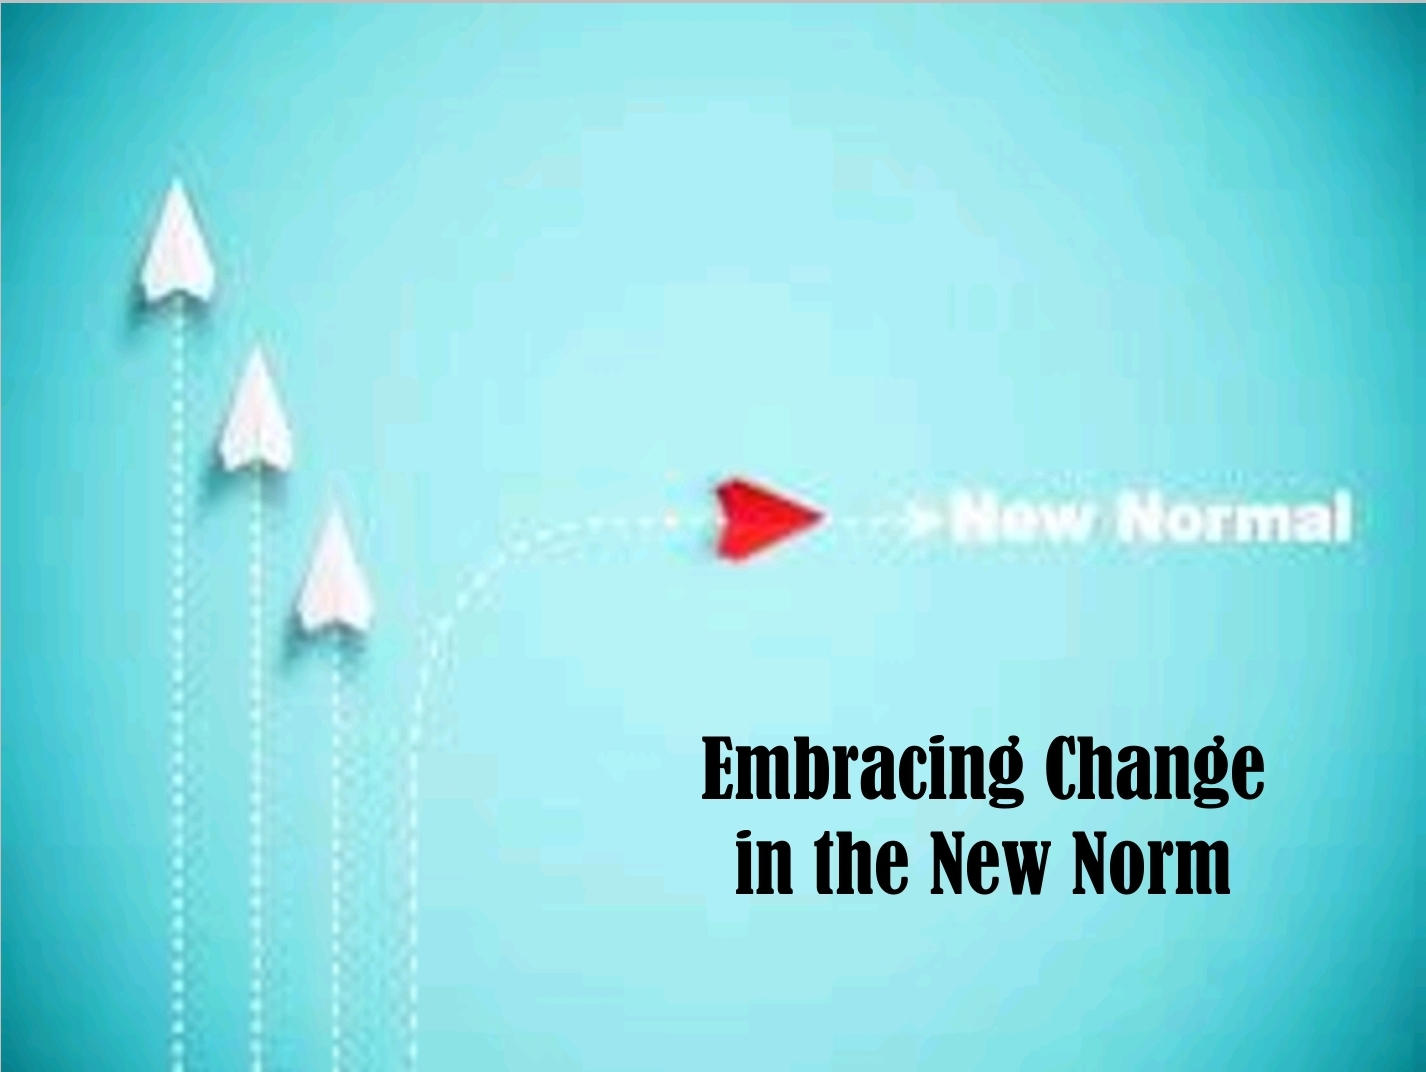 K&J Embracing Change In the New Norm